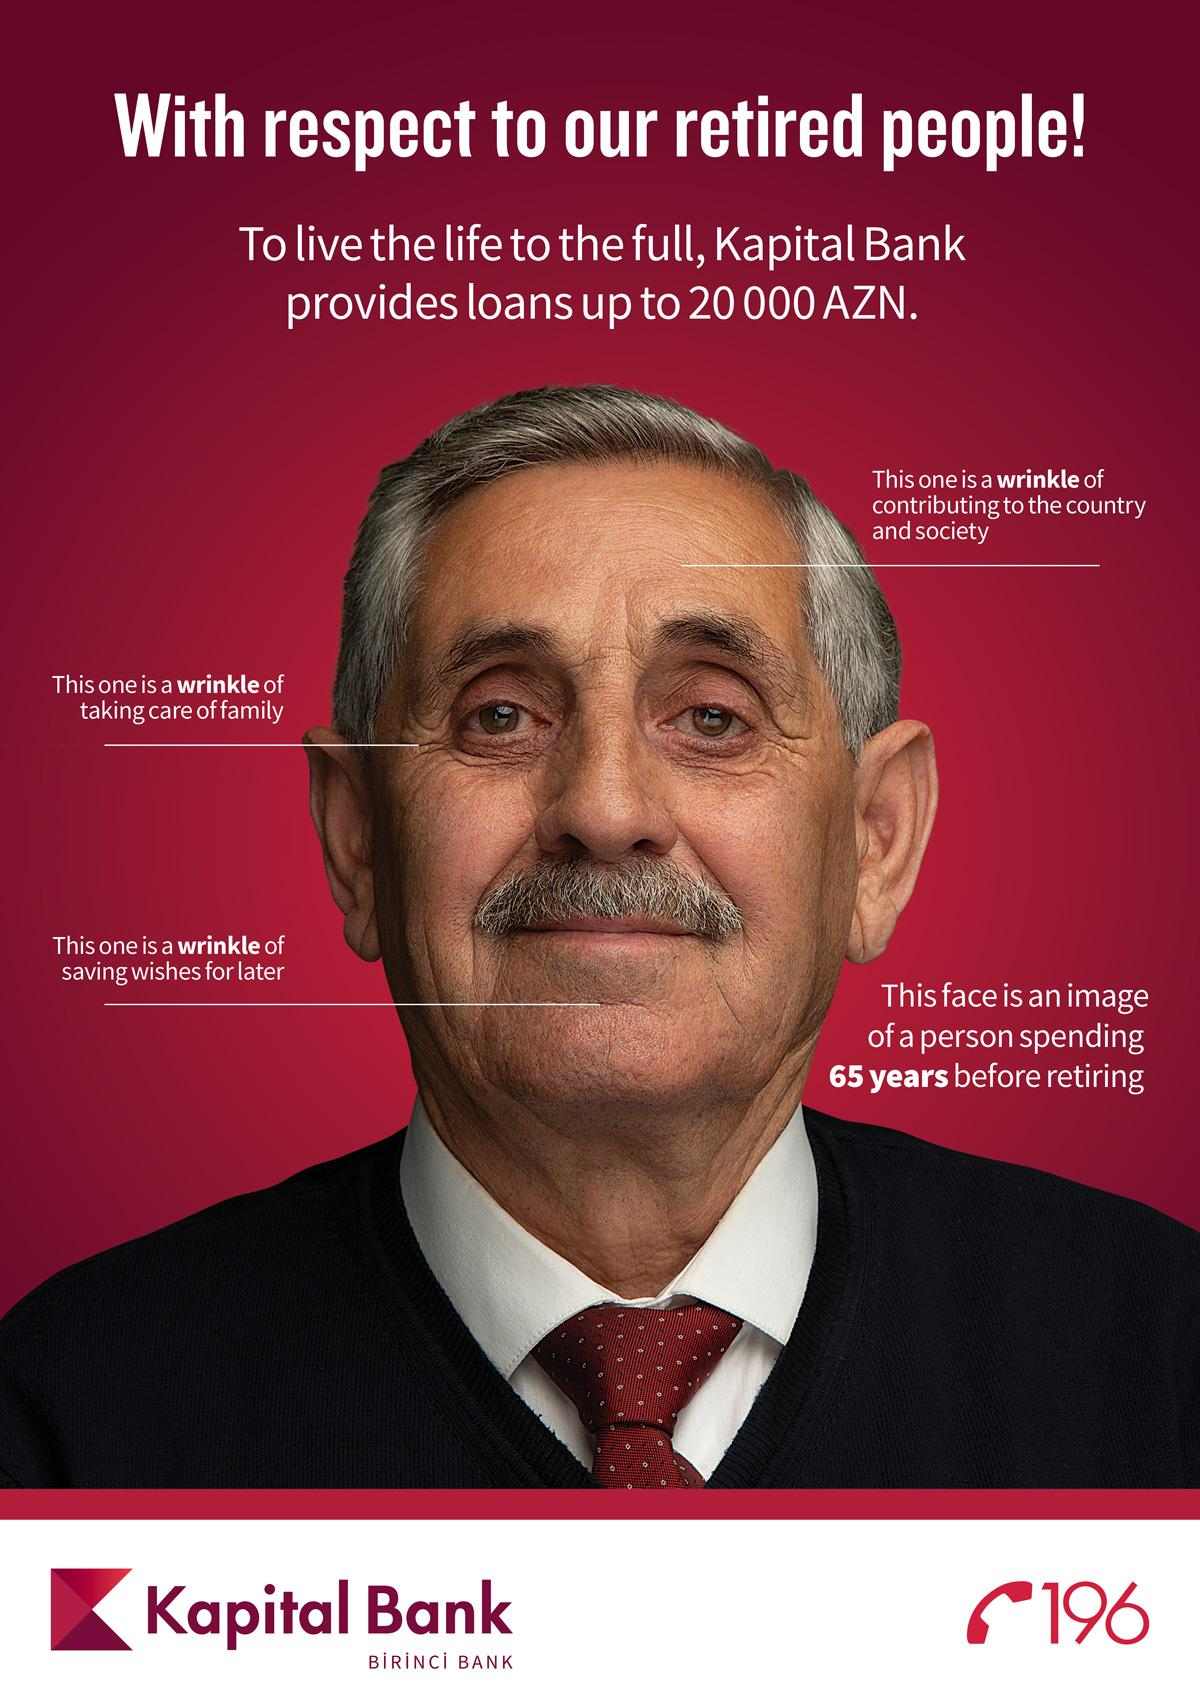 Kapital Bank: With Respect To Our Retired People, 1